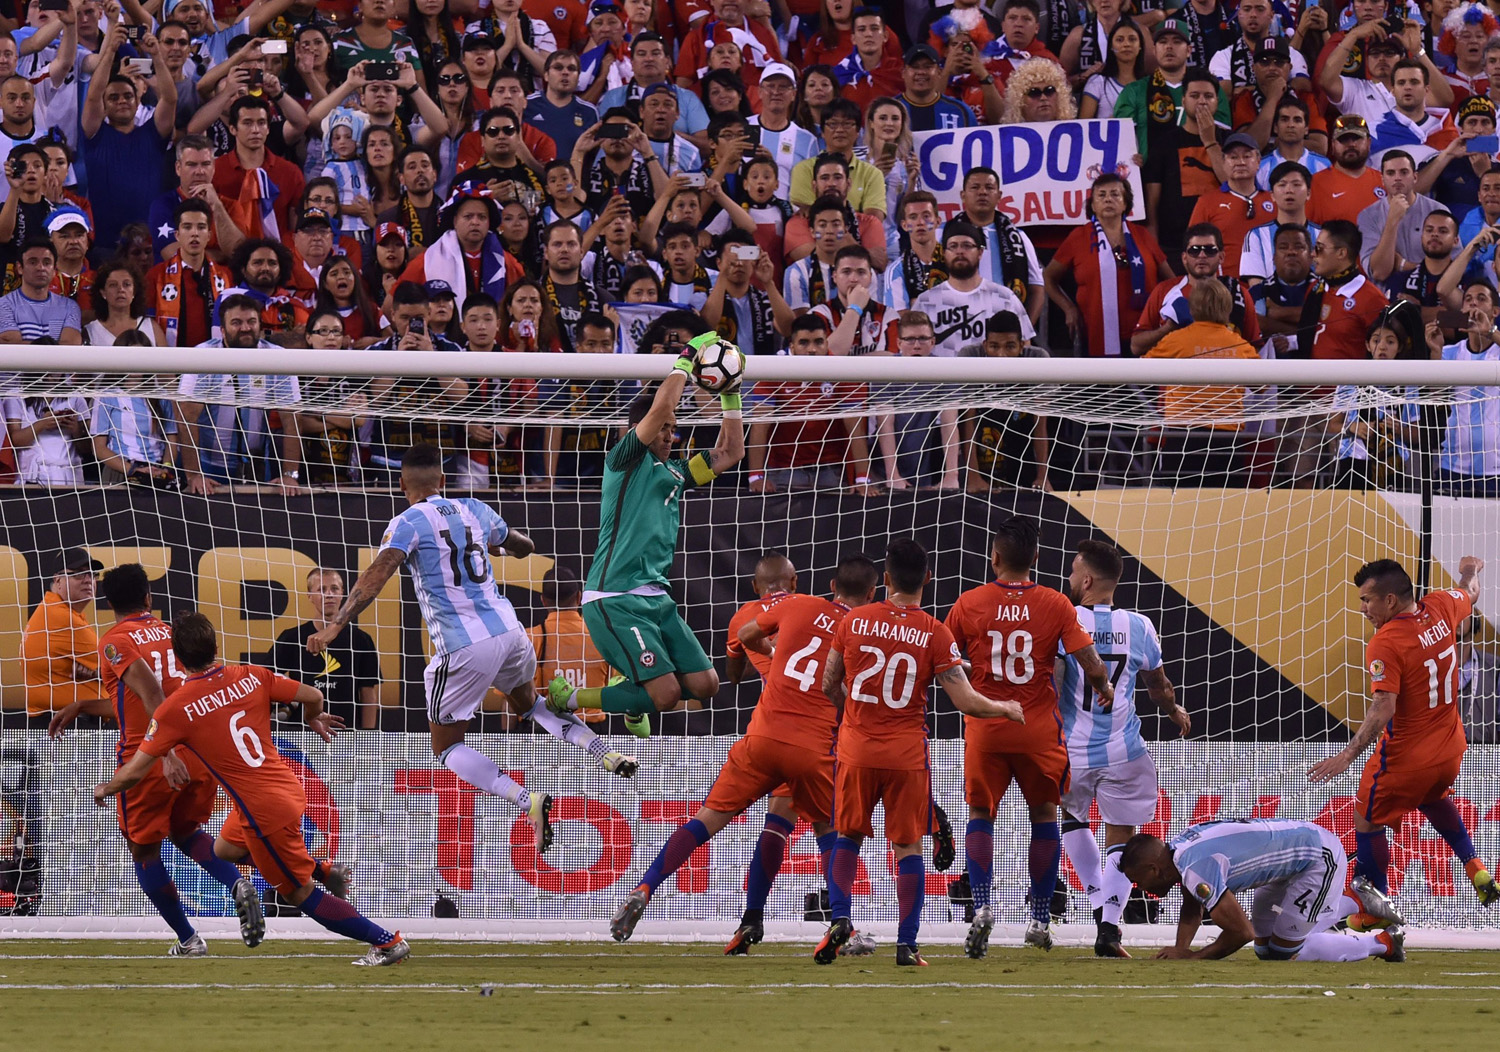 dcdc6311f Khabar Site  Chile Lifts COPA America Cup Beating Argentina 4-2 On ...